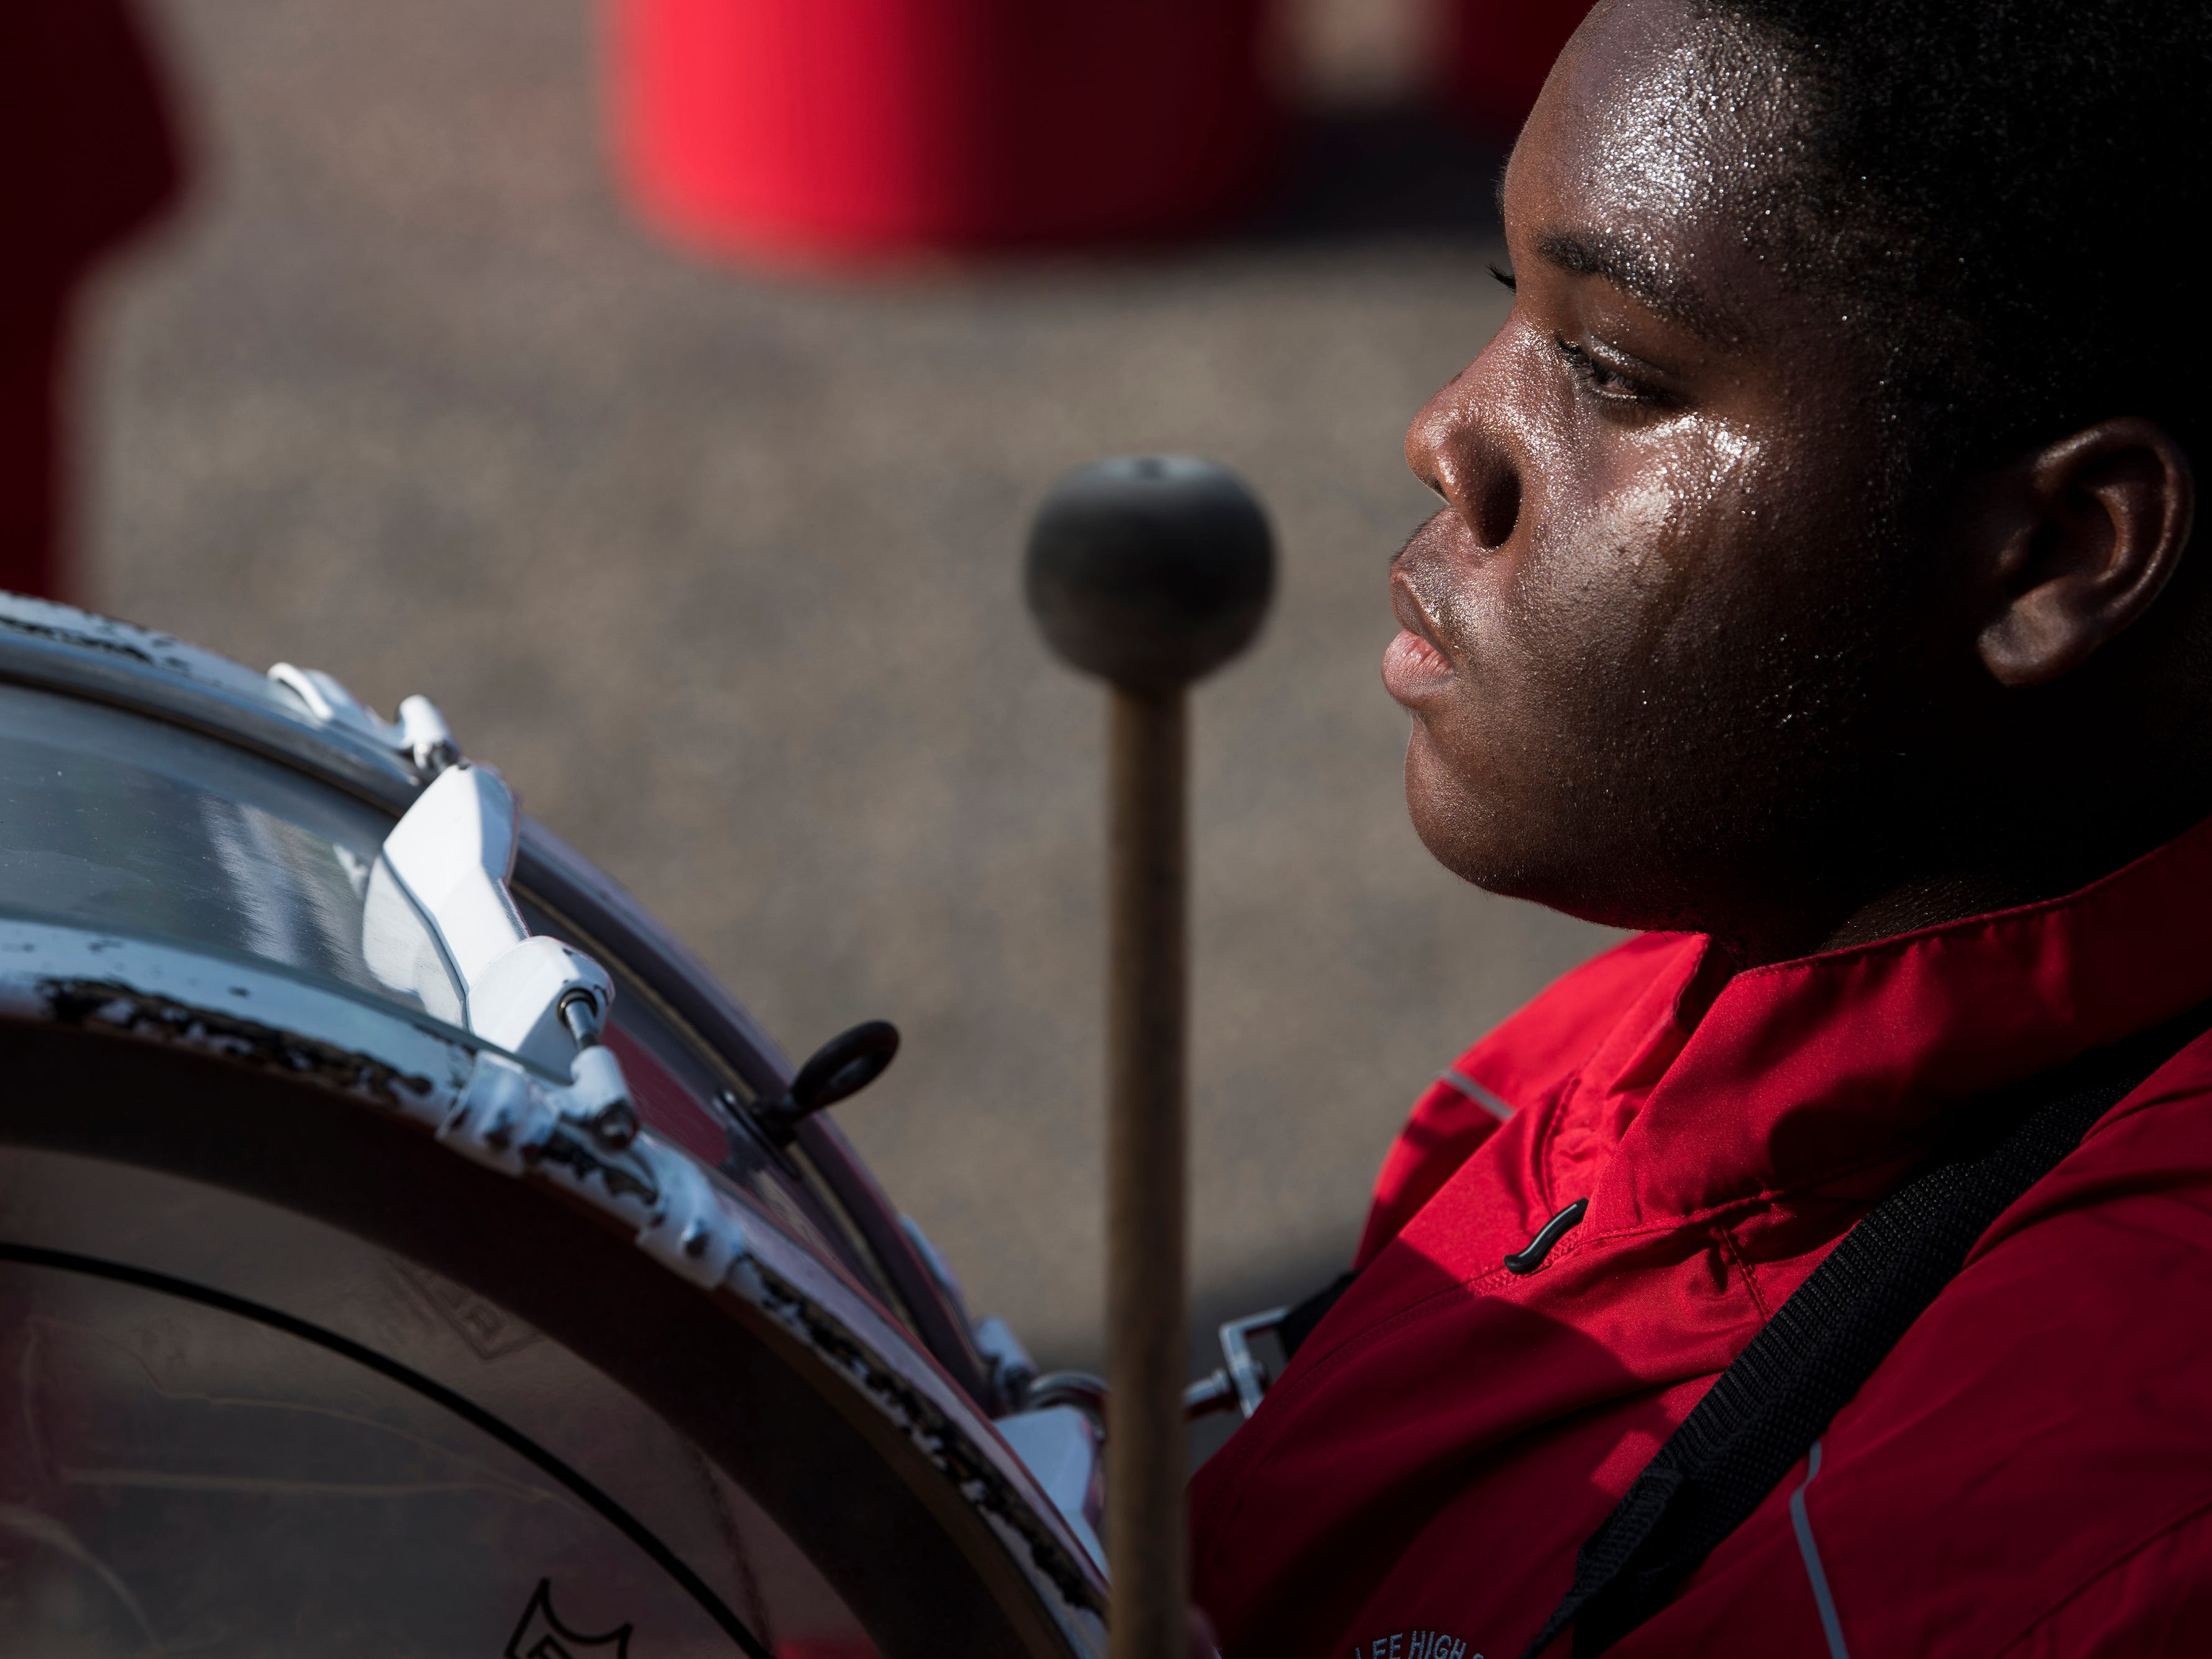 The Lee high school drum line performs during he ground breaking ceremony for the new indoor pool at the Cleveland Ave. YMCA in Montgomery, Ala., on Thursday, Aug. 16, 2018.